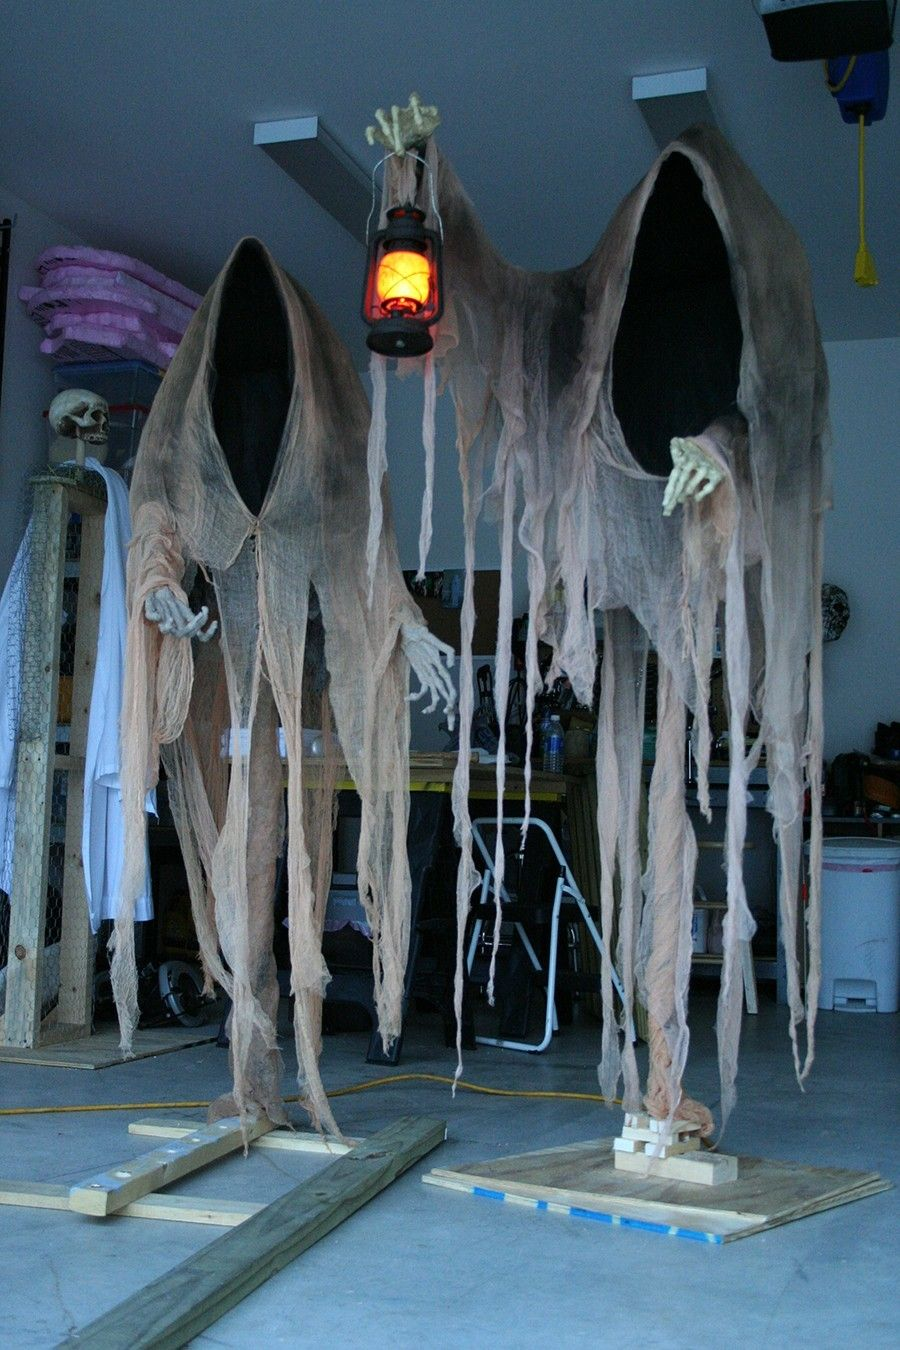 cloaked ghost decoration for 2015 Halloween - skeleton, lantern - Most  creepy & creative Halloween ghost decoration ideas that you will like 2015  by